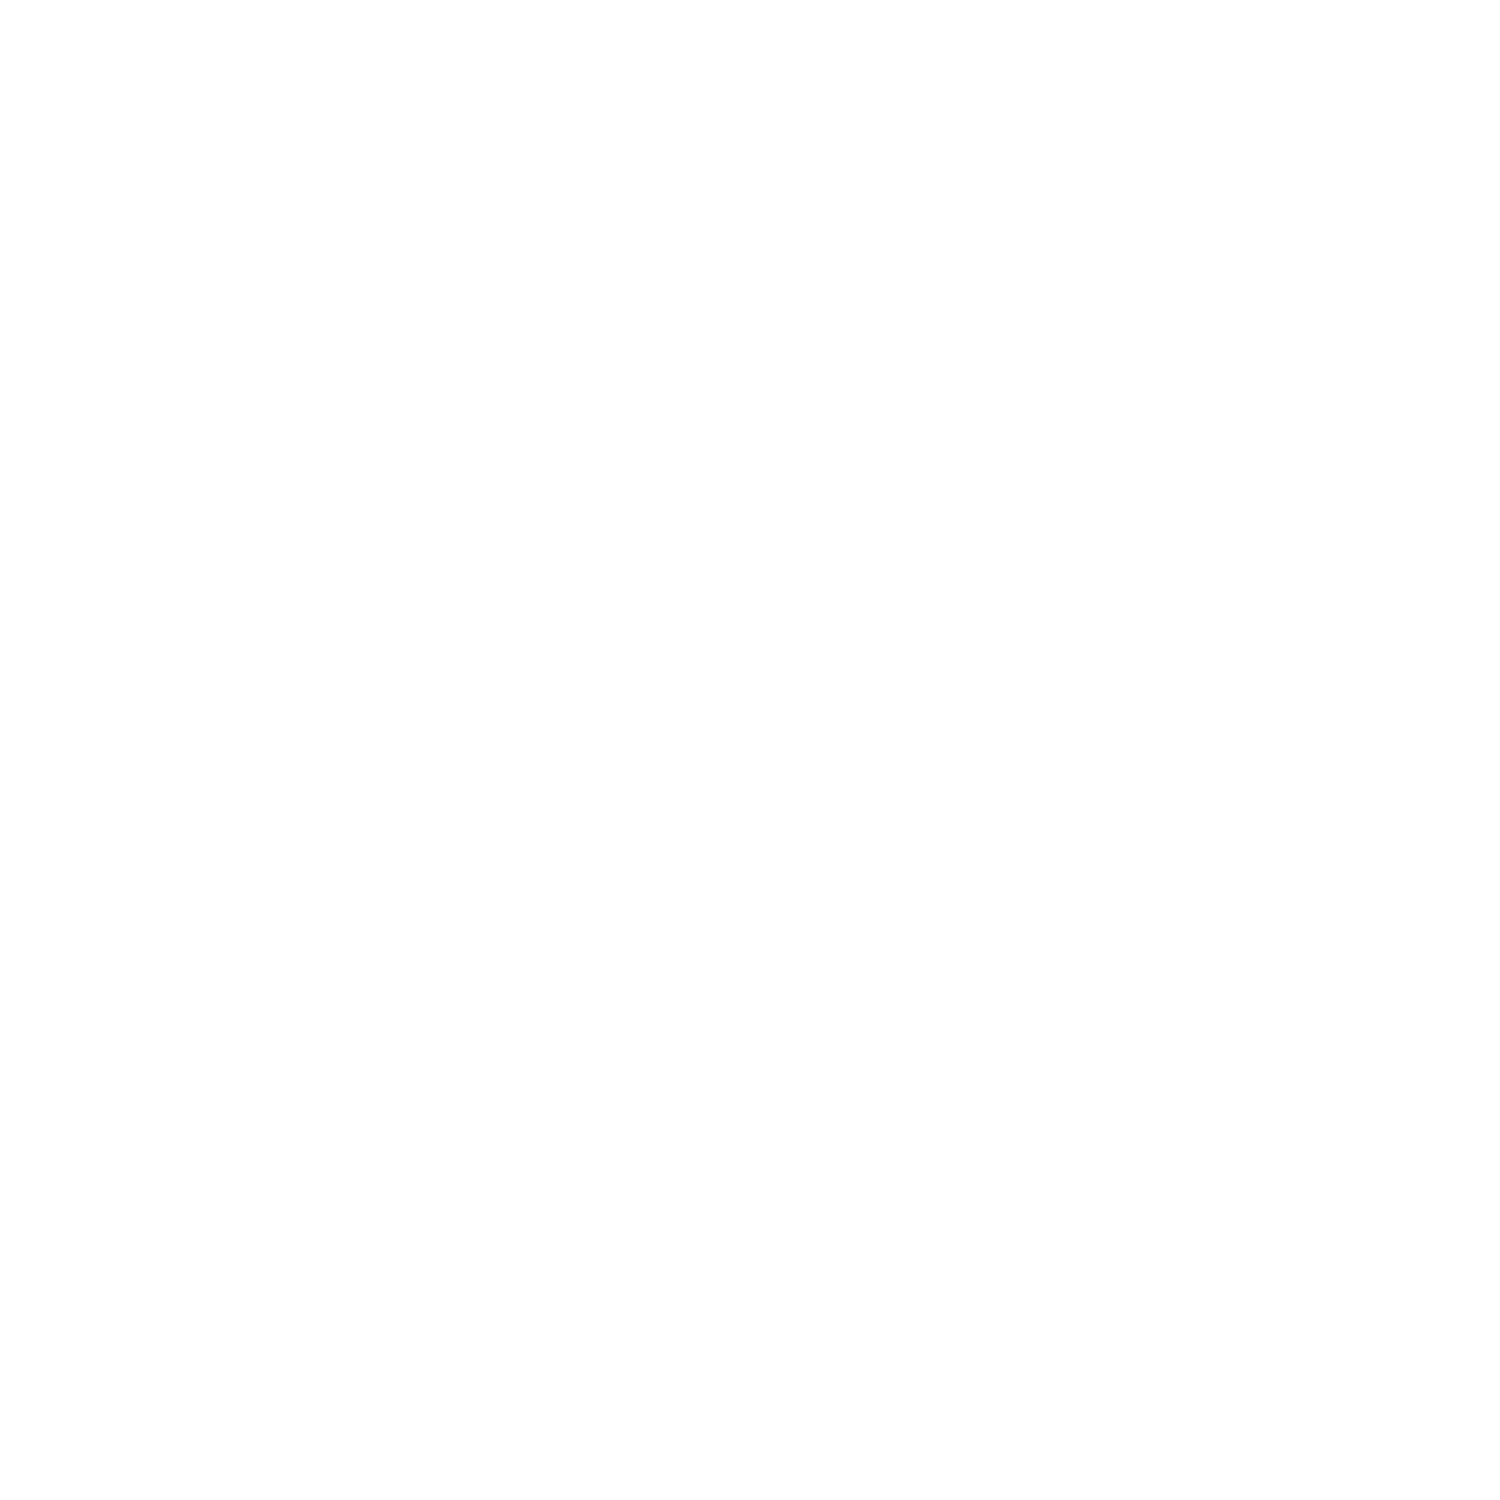 Bound For Nowhere